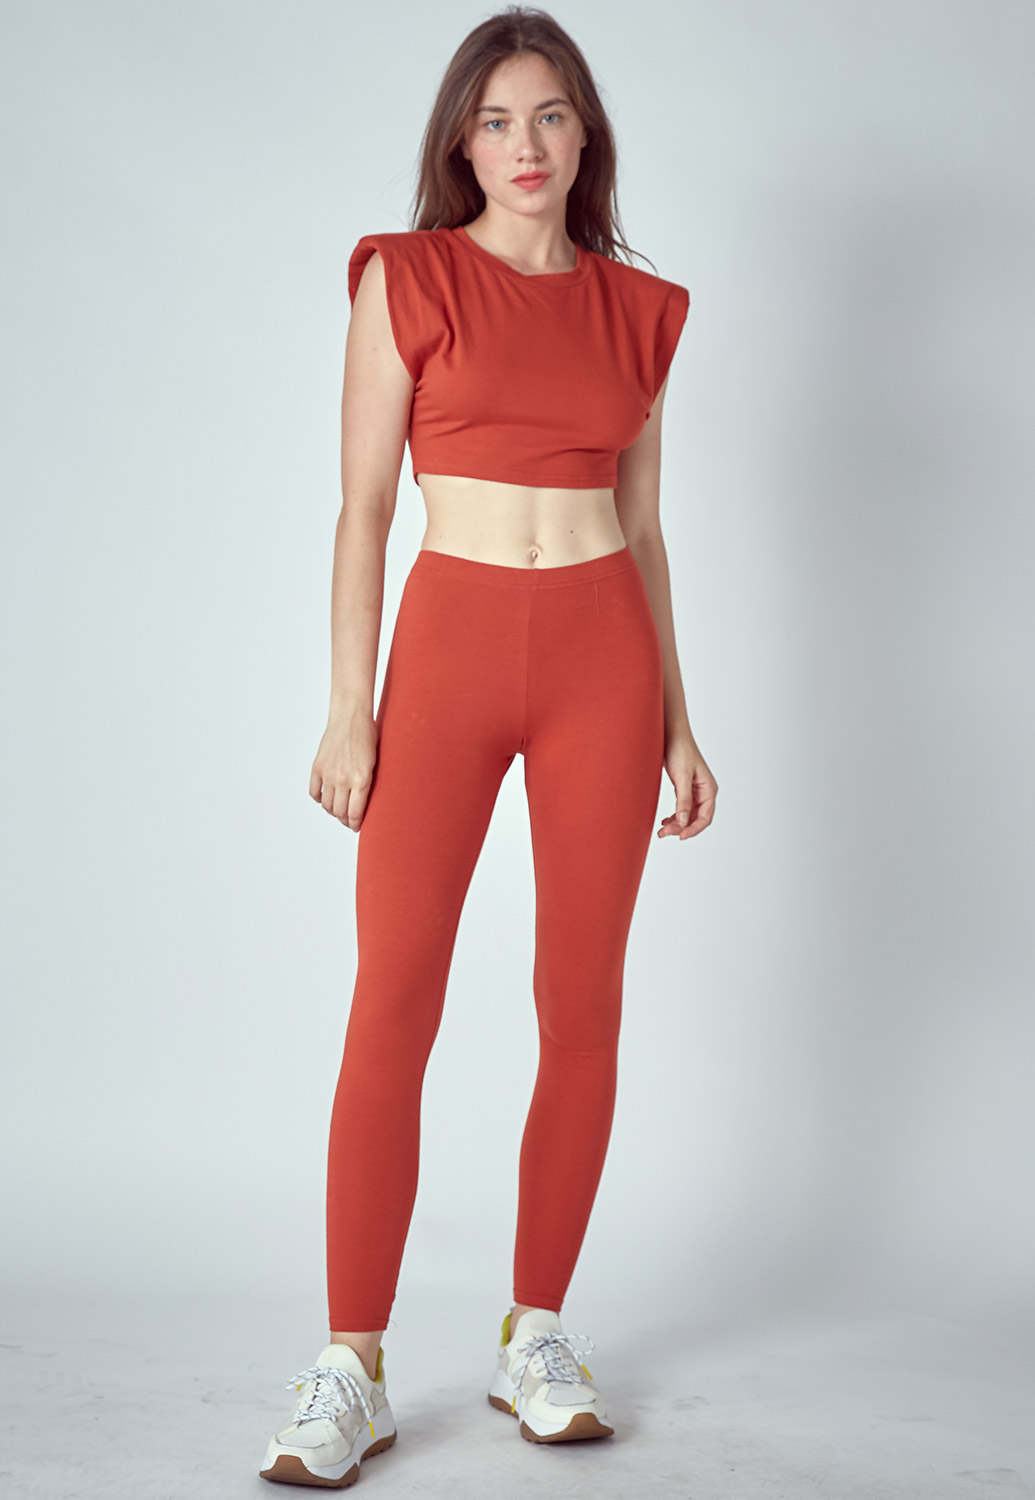 Shoulder Pad Sleeveless Top & Pants Set